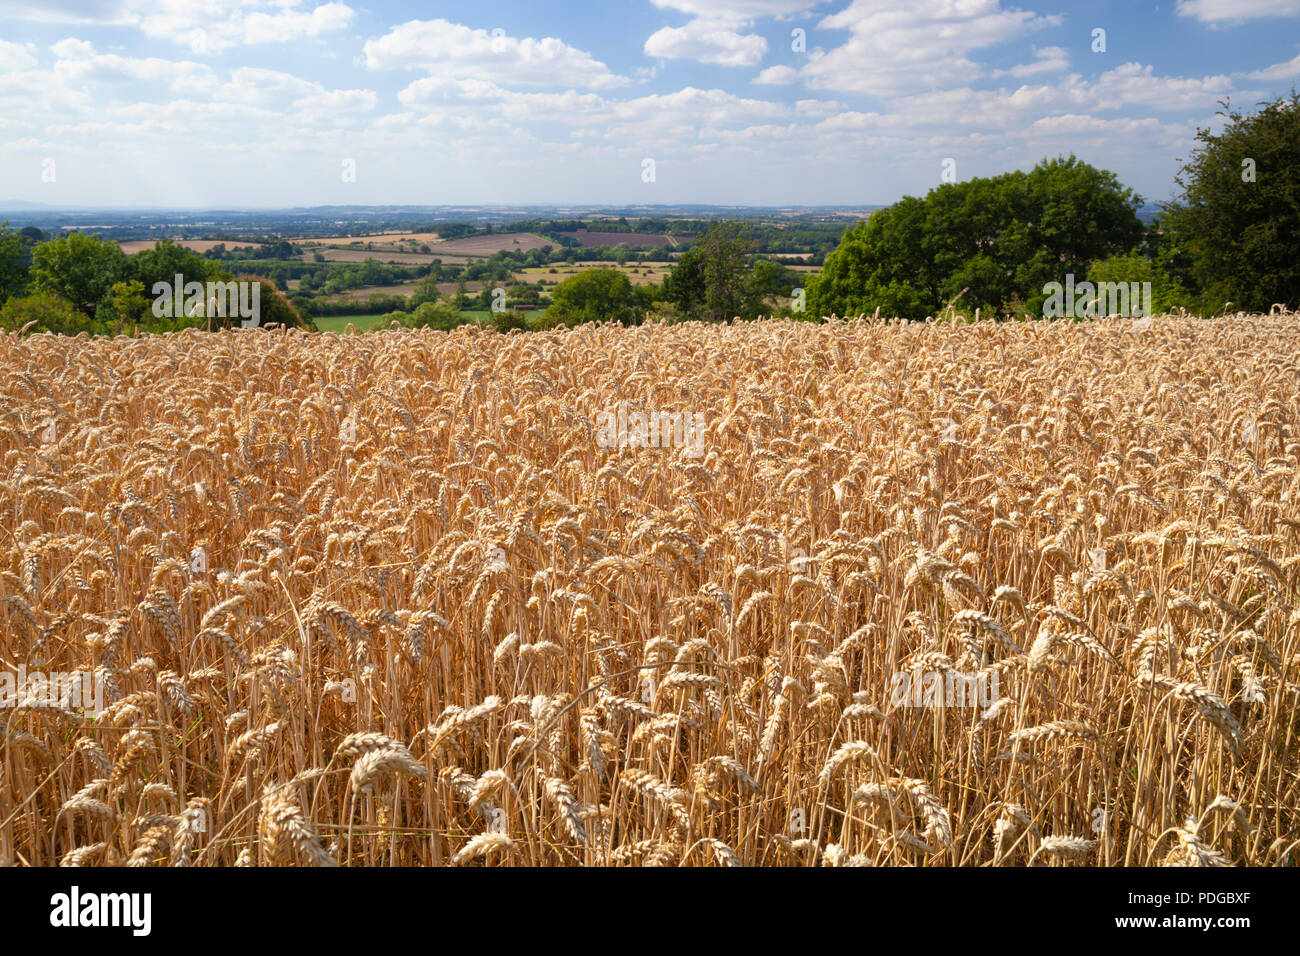 Ripe yellow-brown wheat field with countryside behind in summer, Mickleton, Cotswolds, Gloucestershire, England, United Kingdom, Europe - Stock Image